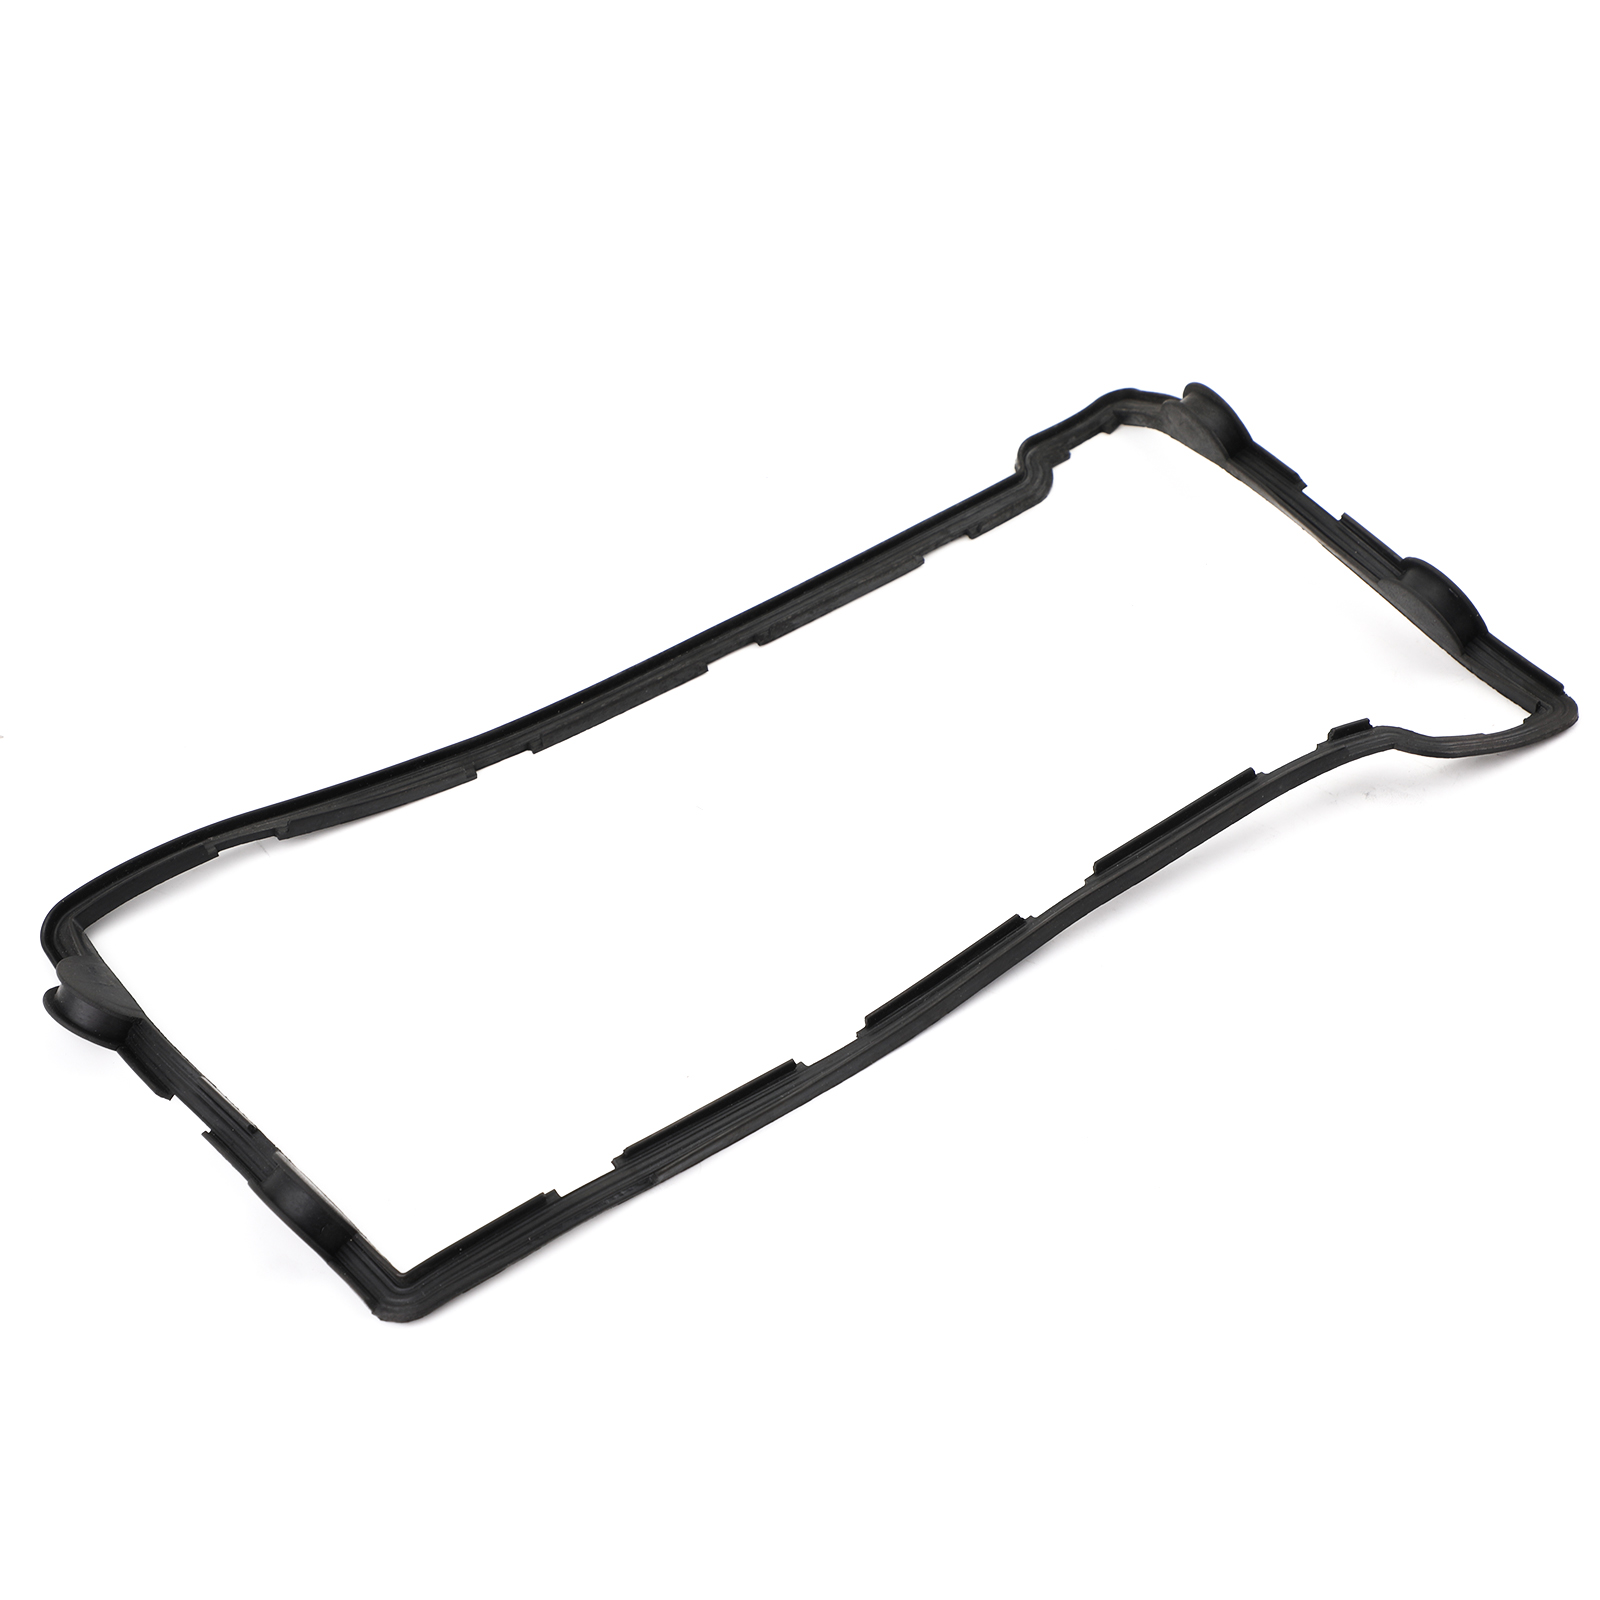 Valve Cover Gasket Seal for Kawasaki ZX400 ZXR400 ZX-4